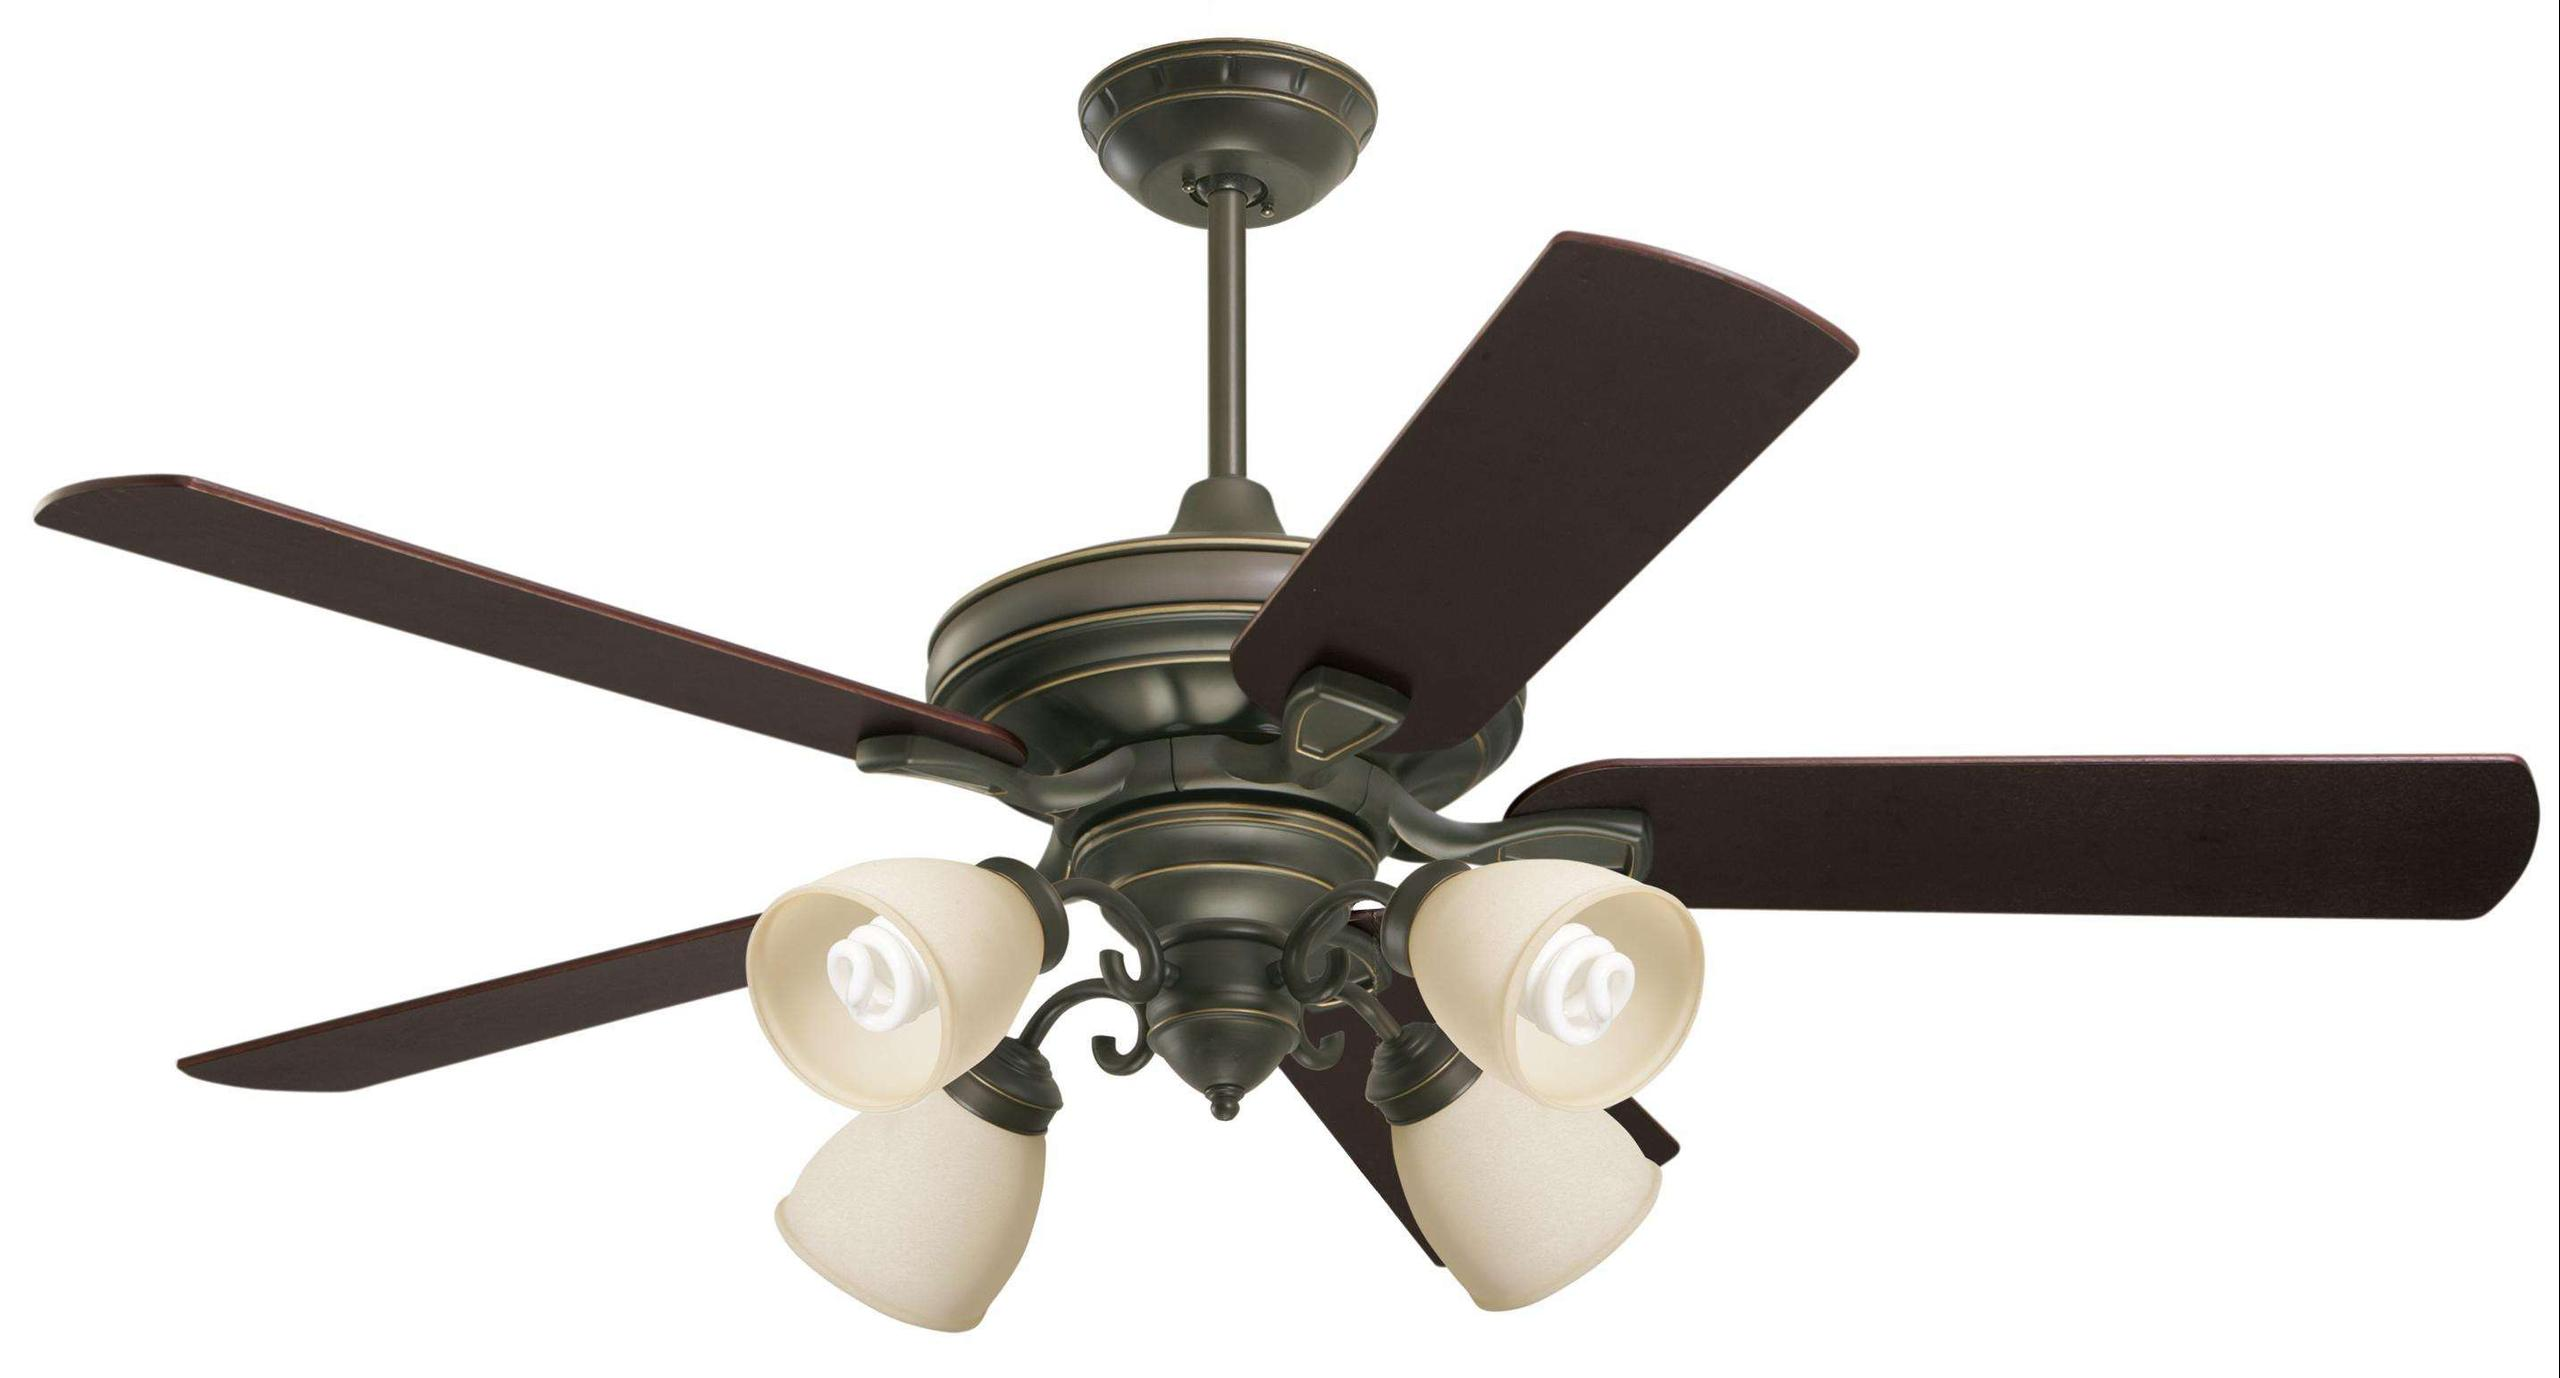 Emerson Carrera Grande Eco 60 (DC Motor) Ceiling Fan Model CF788GES-B78CH-F490GES-G58 in Golden Espresso